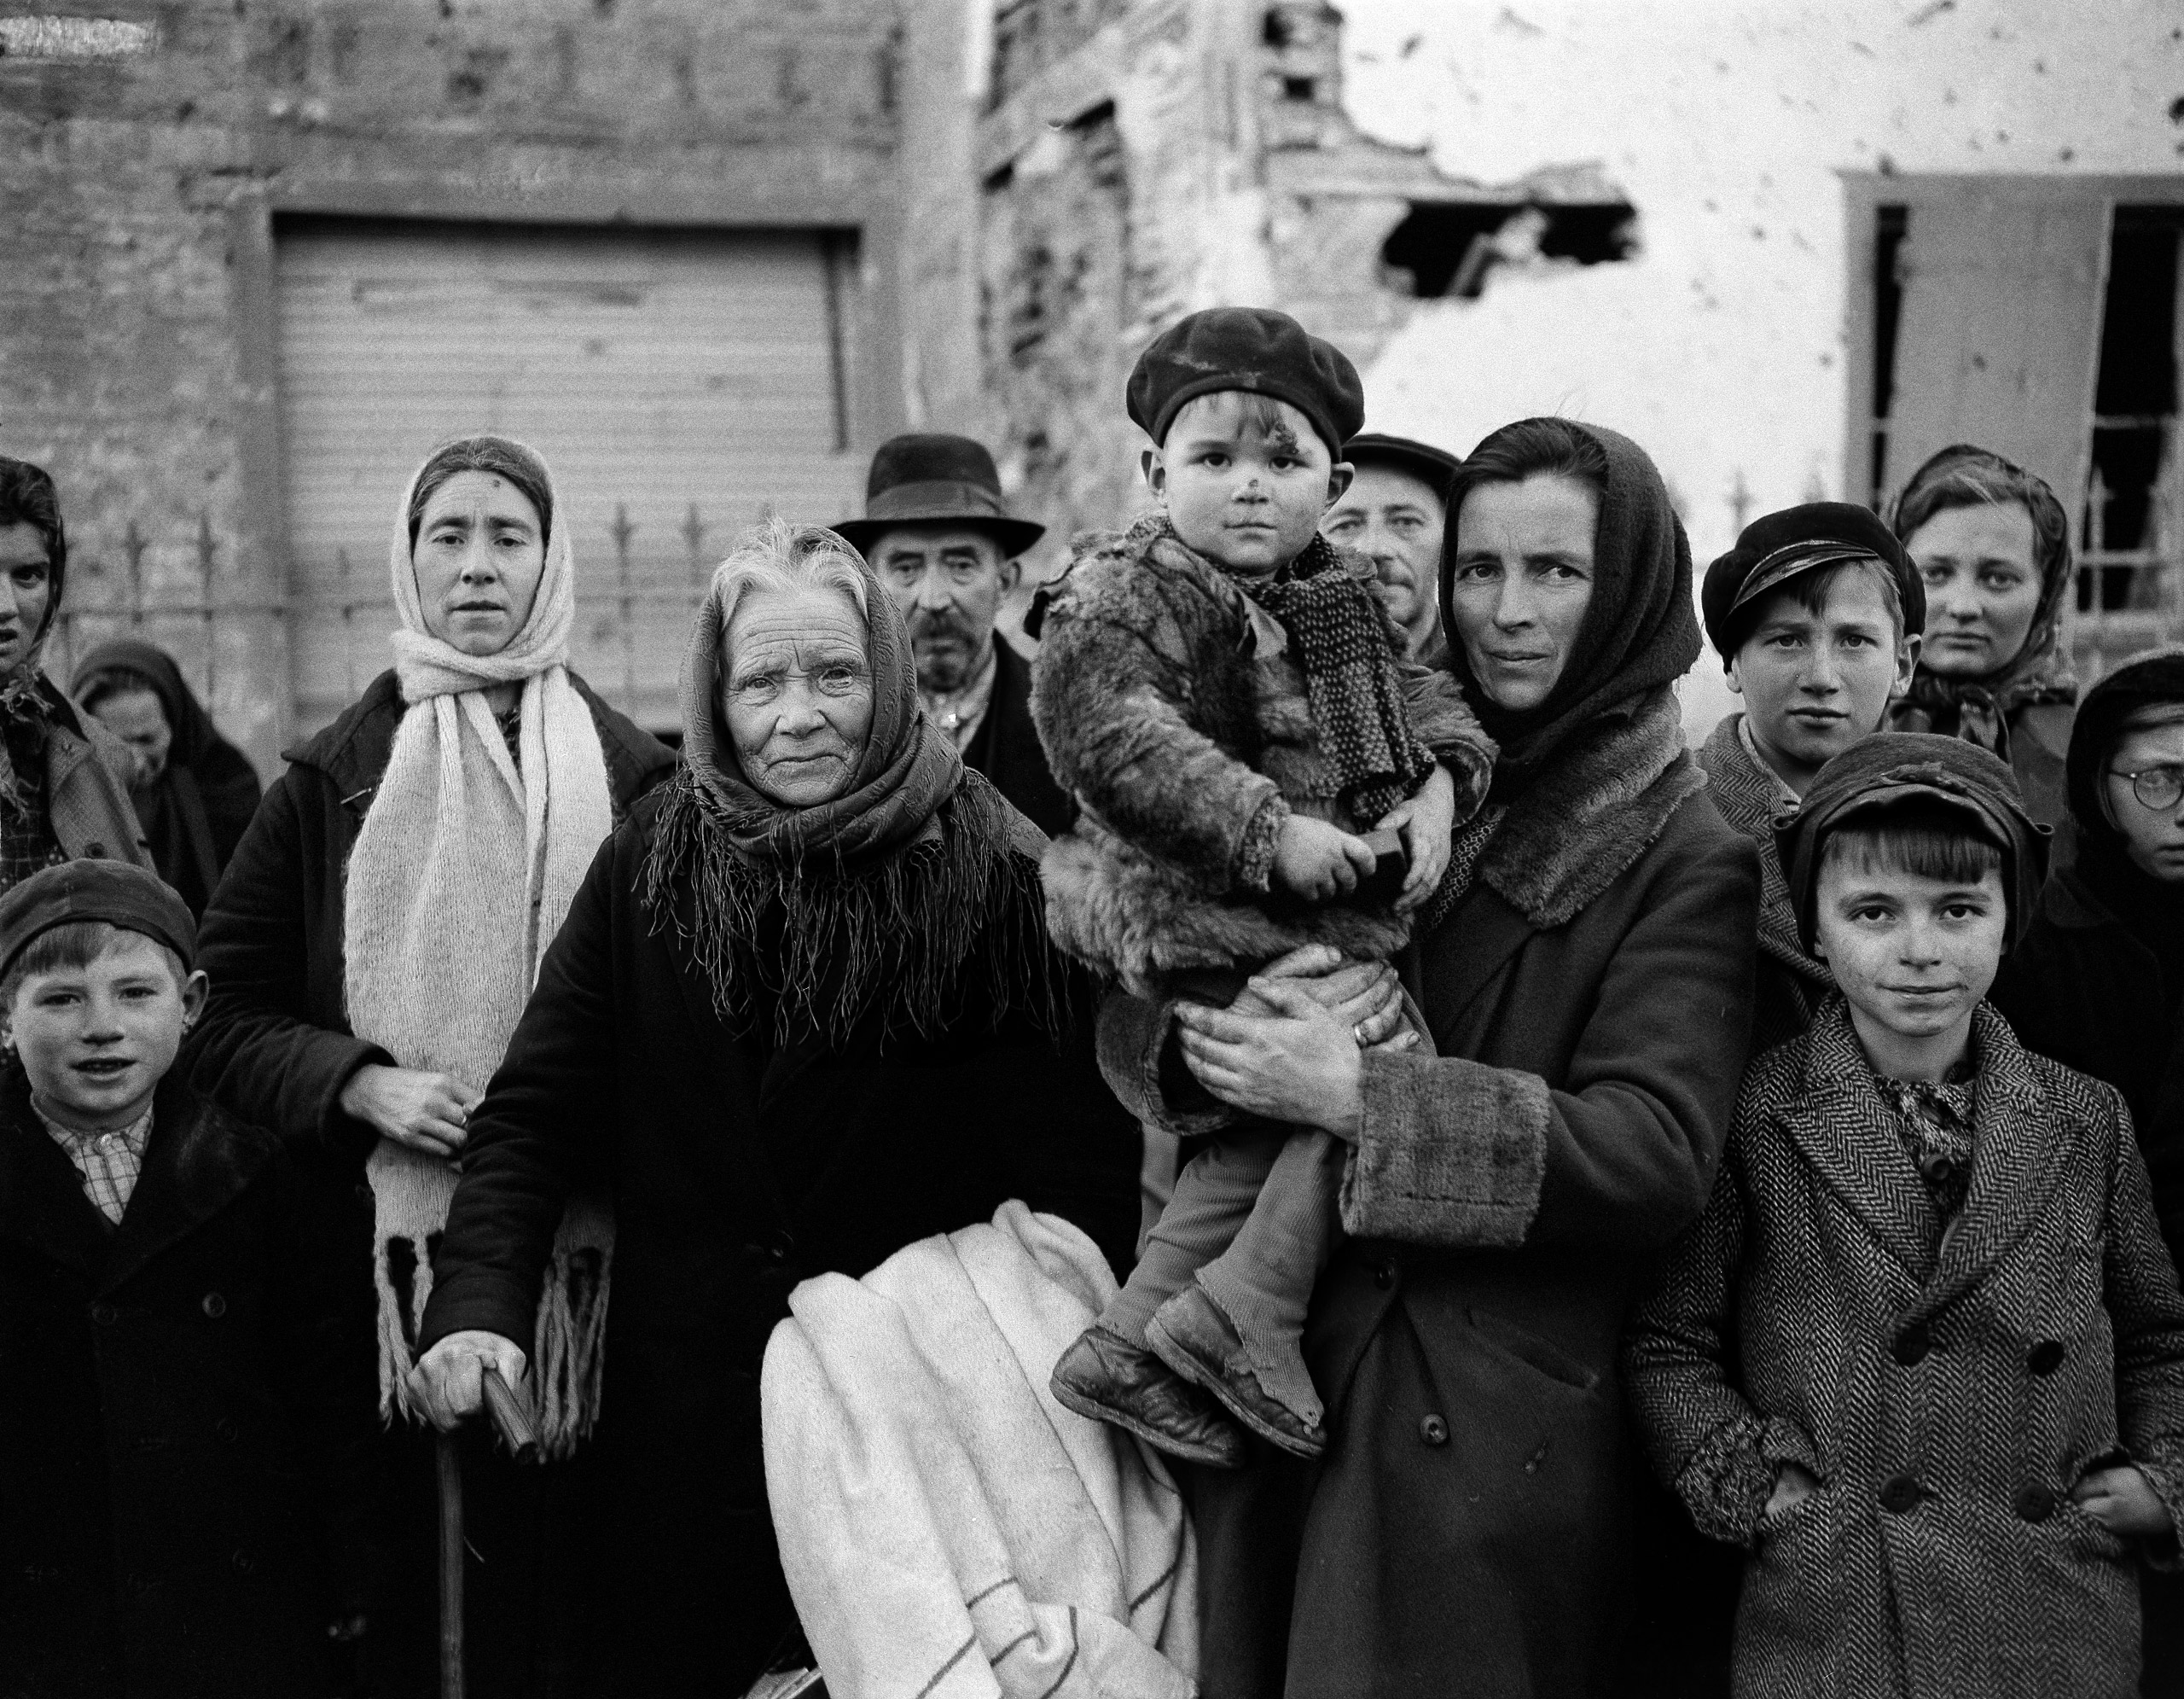 Refugees in La Gleize, Belgium, on Jan. 2, 1945, wait to be transported from the war-torn town after its recapture by American forces during the German thrust into the Belgium-Luxembourg salient.